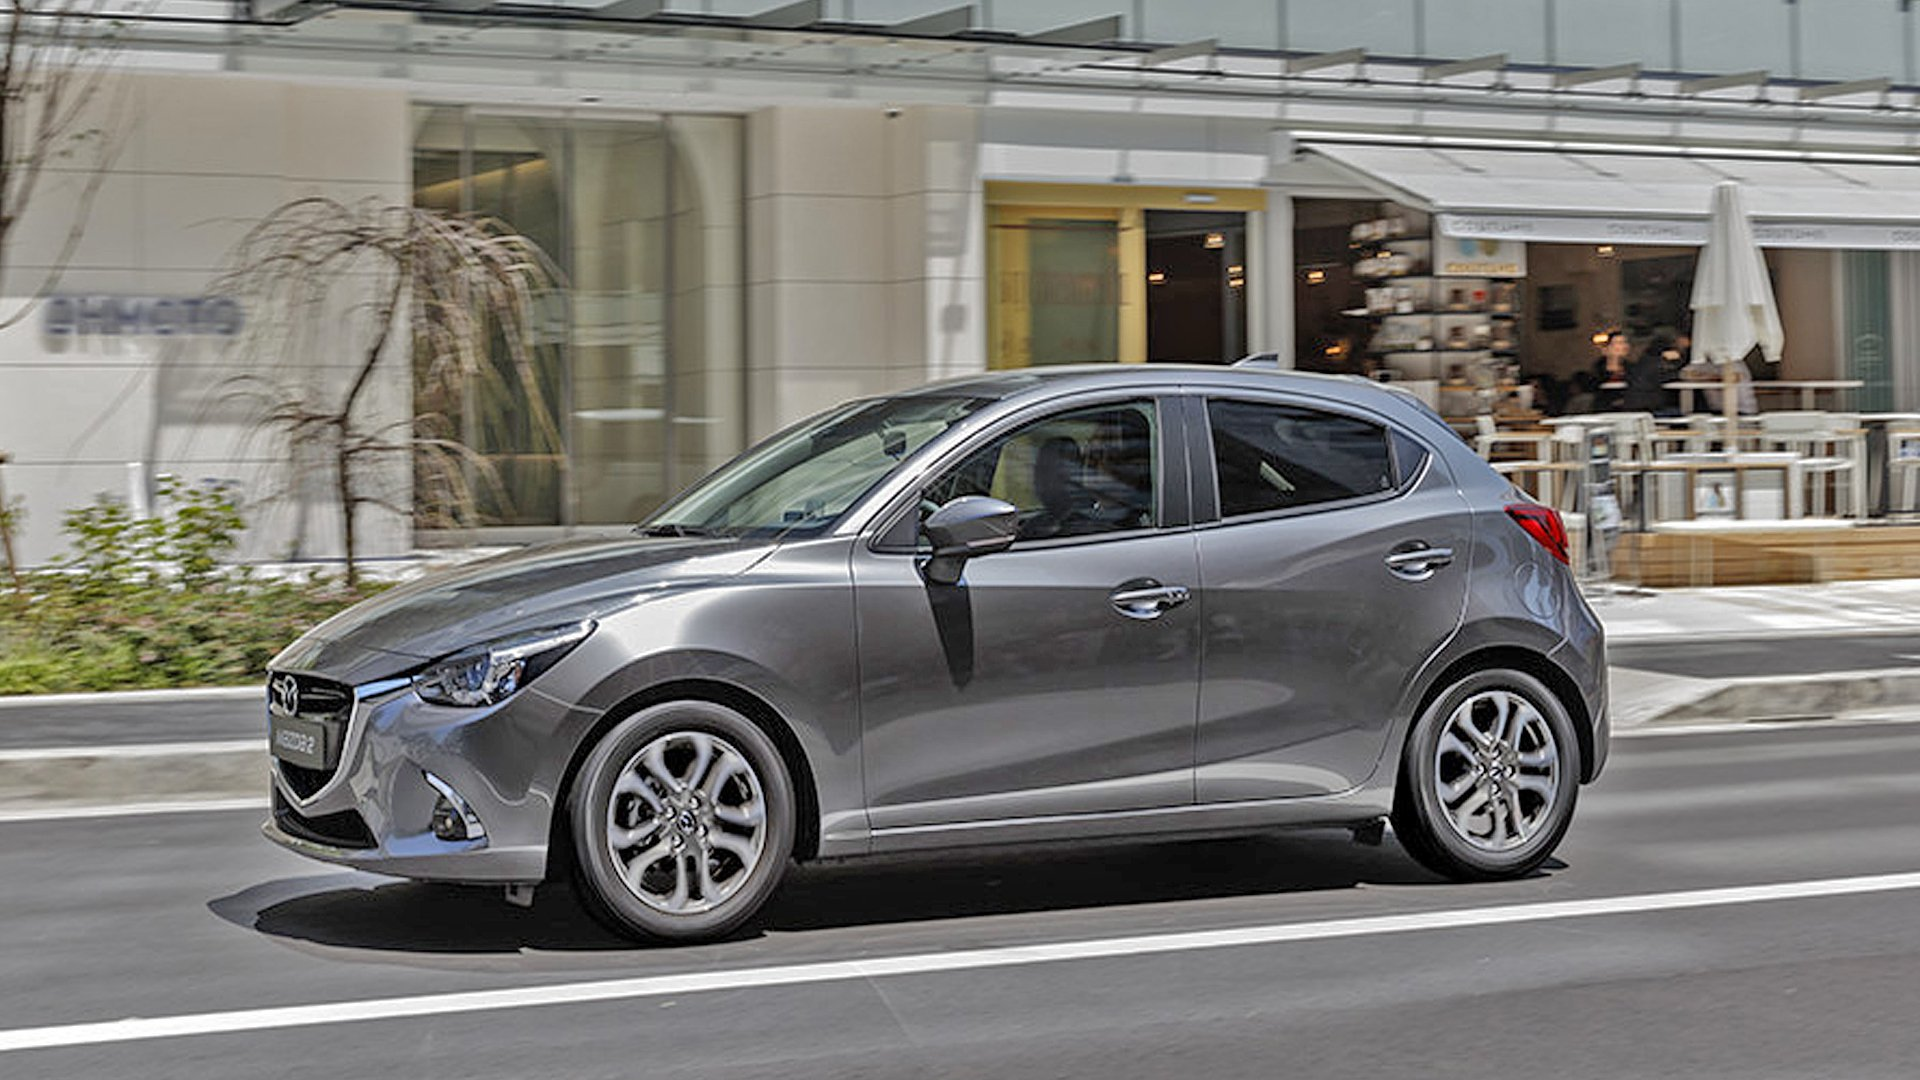 New 2019 Mazda 2 First Pictures